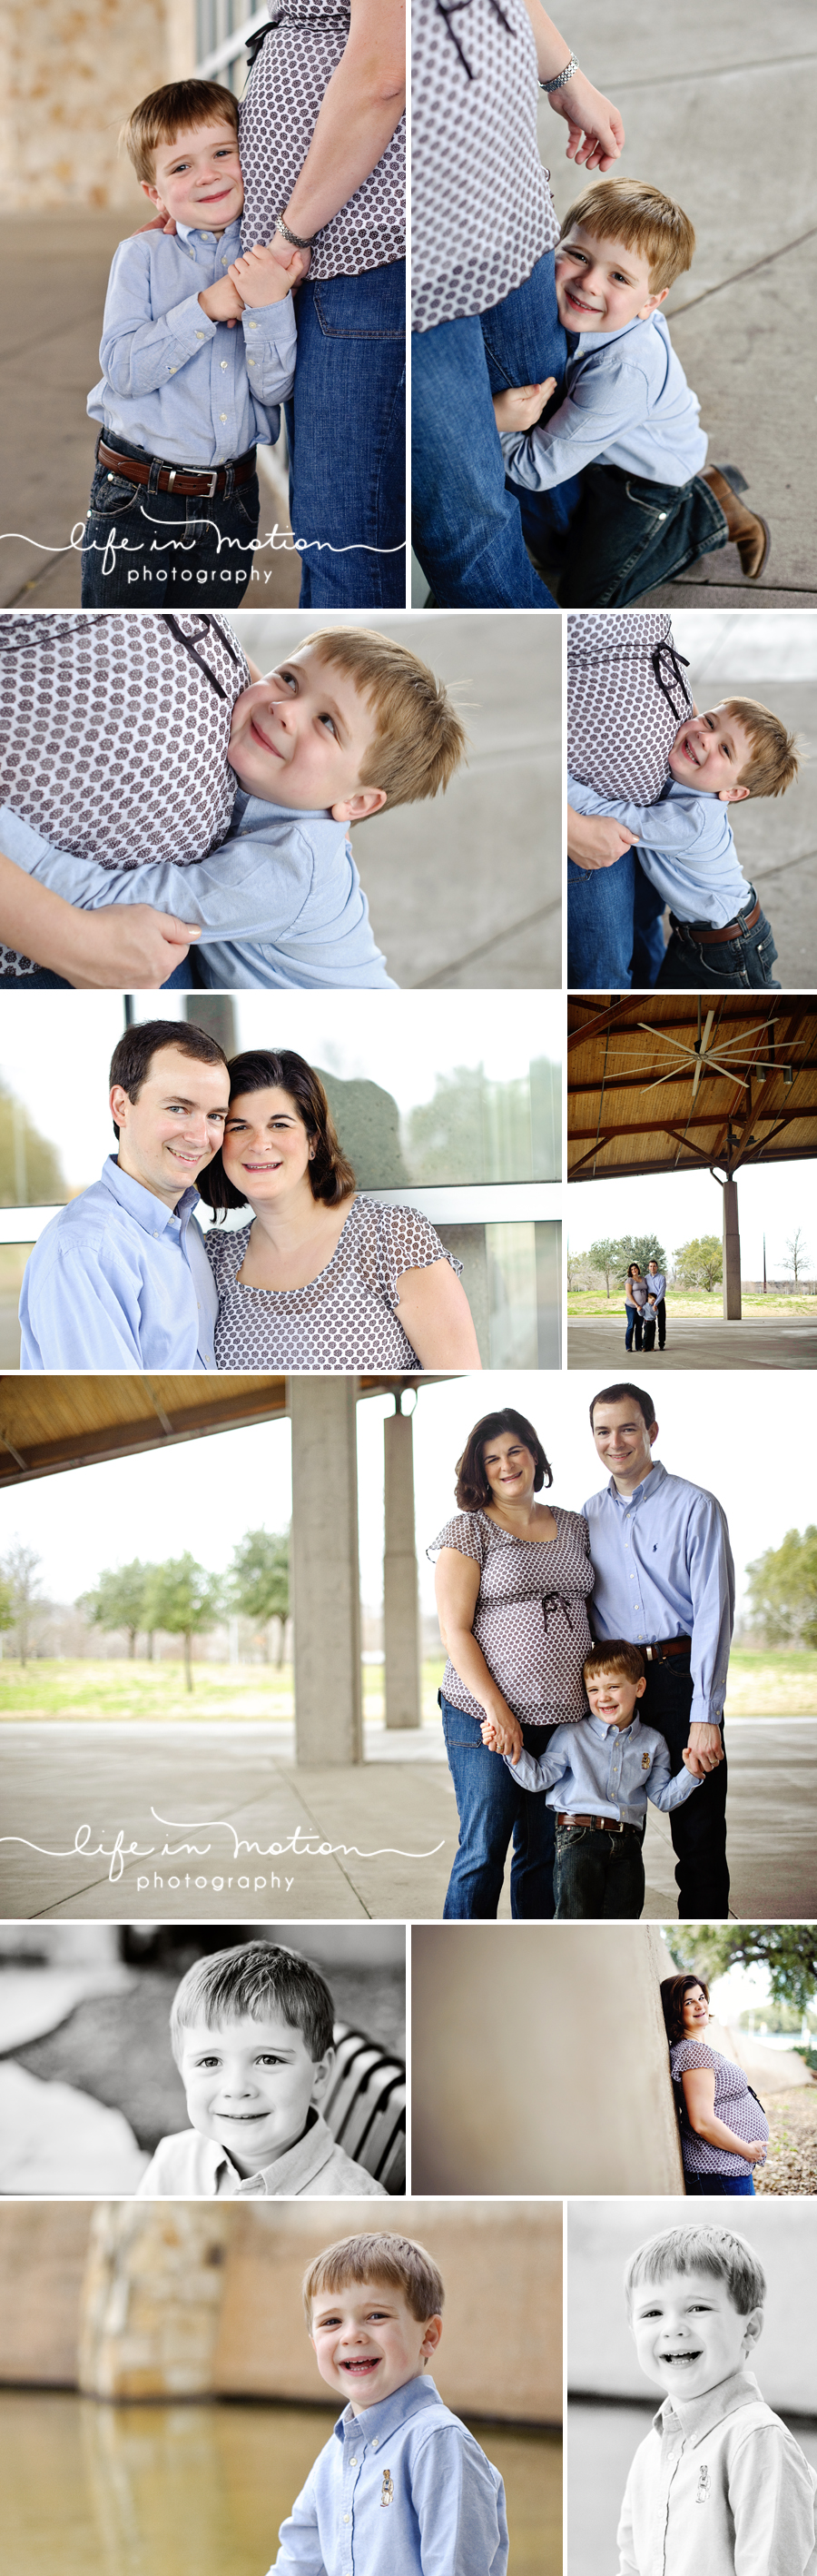 austin_family_maternity_pregnancy_photographer